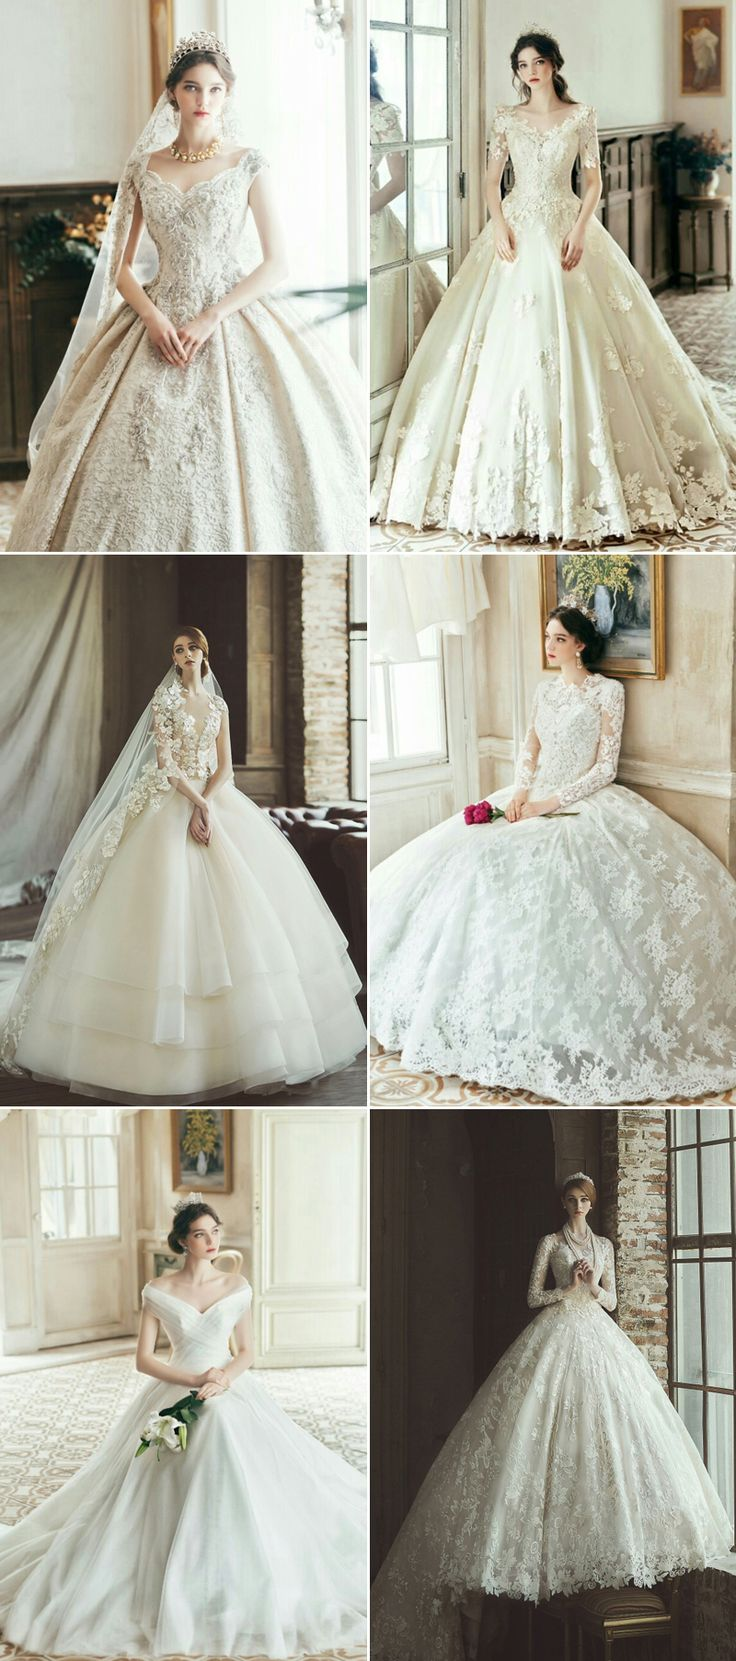 """When you start your wedding dress shopping, the bridal shops you visit will most likely ask you where your wedding will be held. It's important to know your wedding venue before finding your dream dress, because the location will help determine the type of gown you choose. If you're planning to say """"I Do"""" in …"""